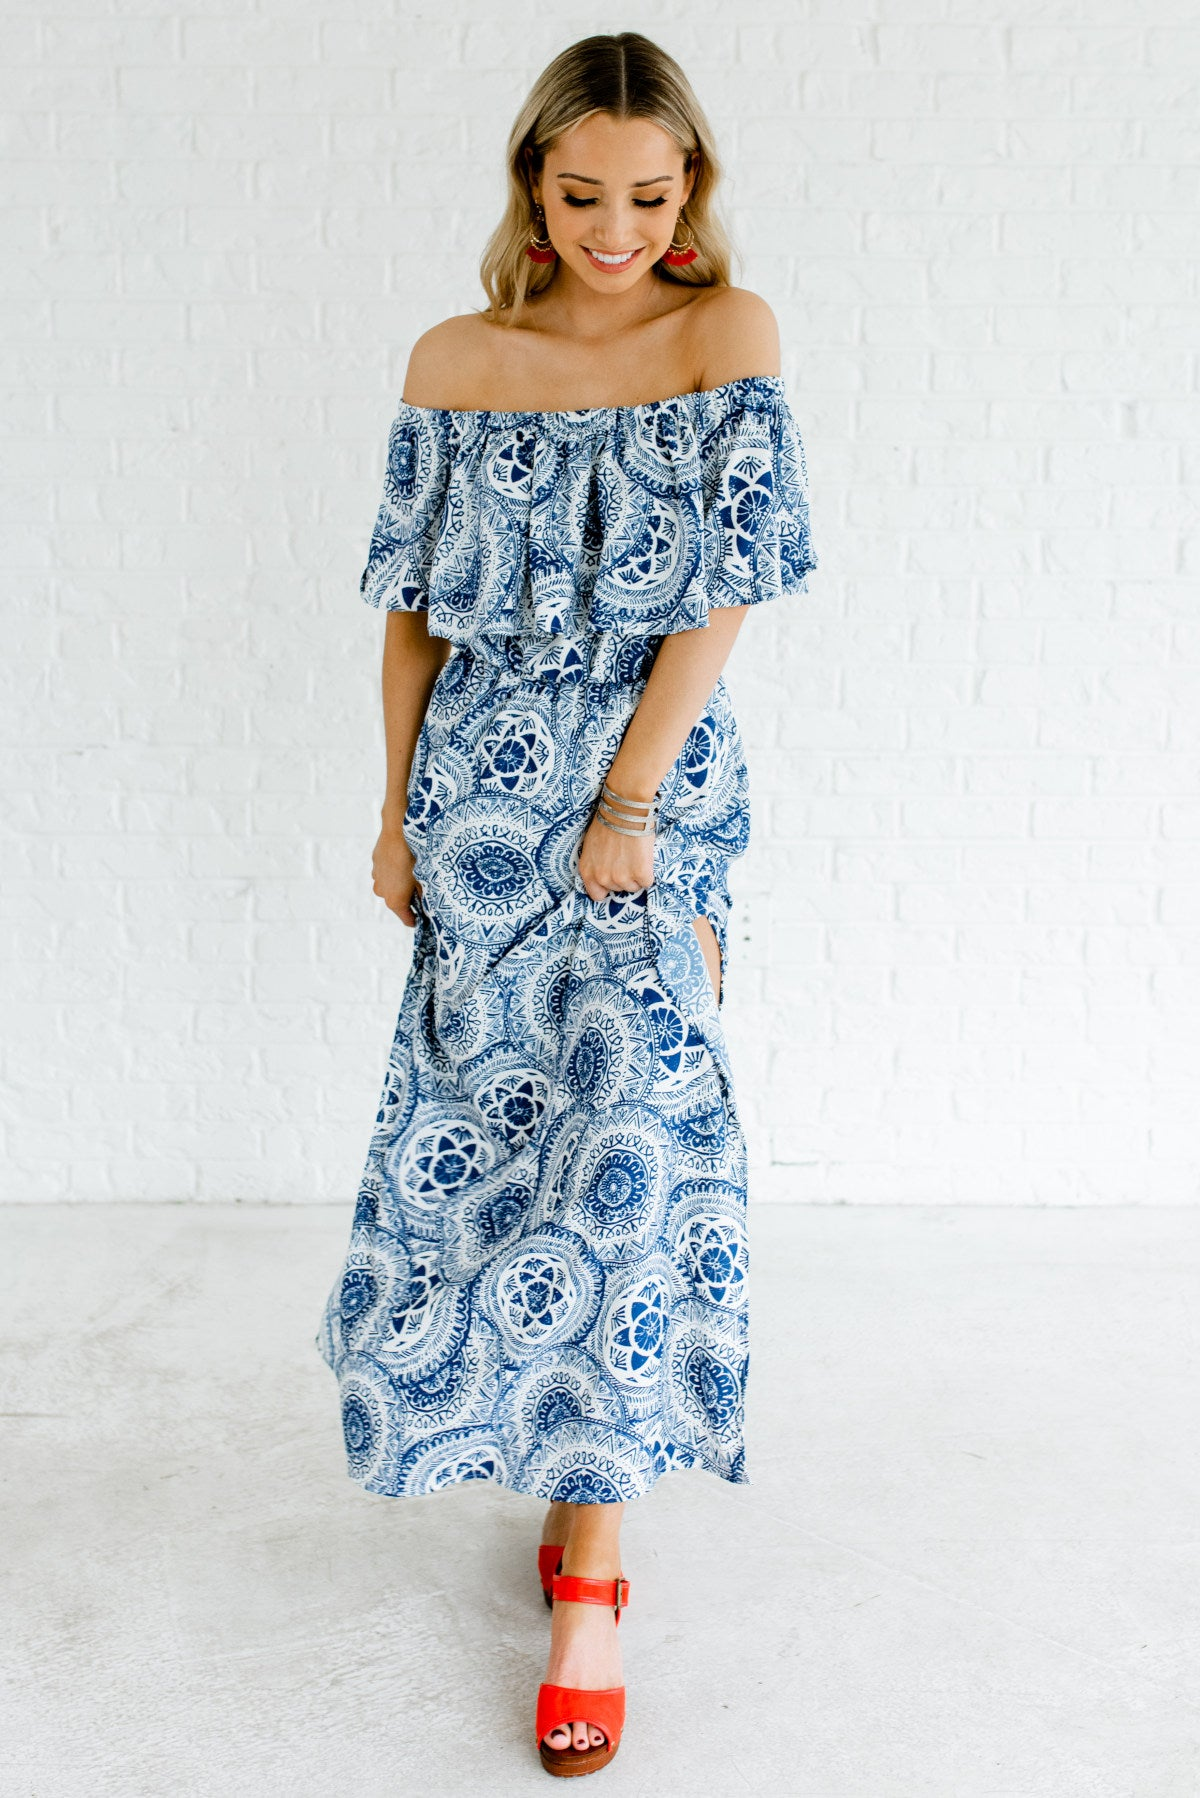 Blue and White Patterned Maxi Length Boutique Dresses for Women